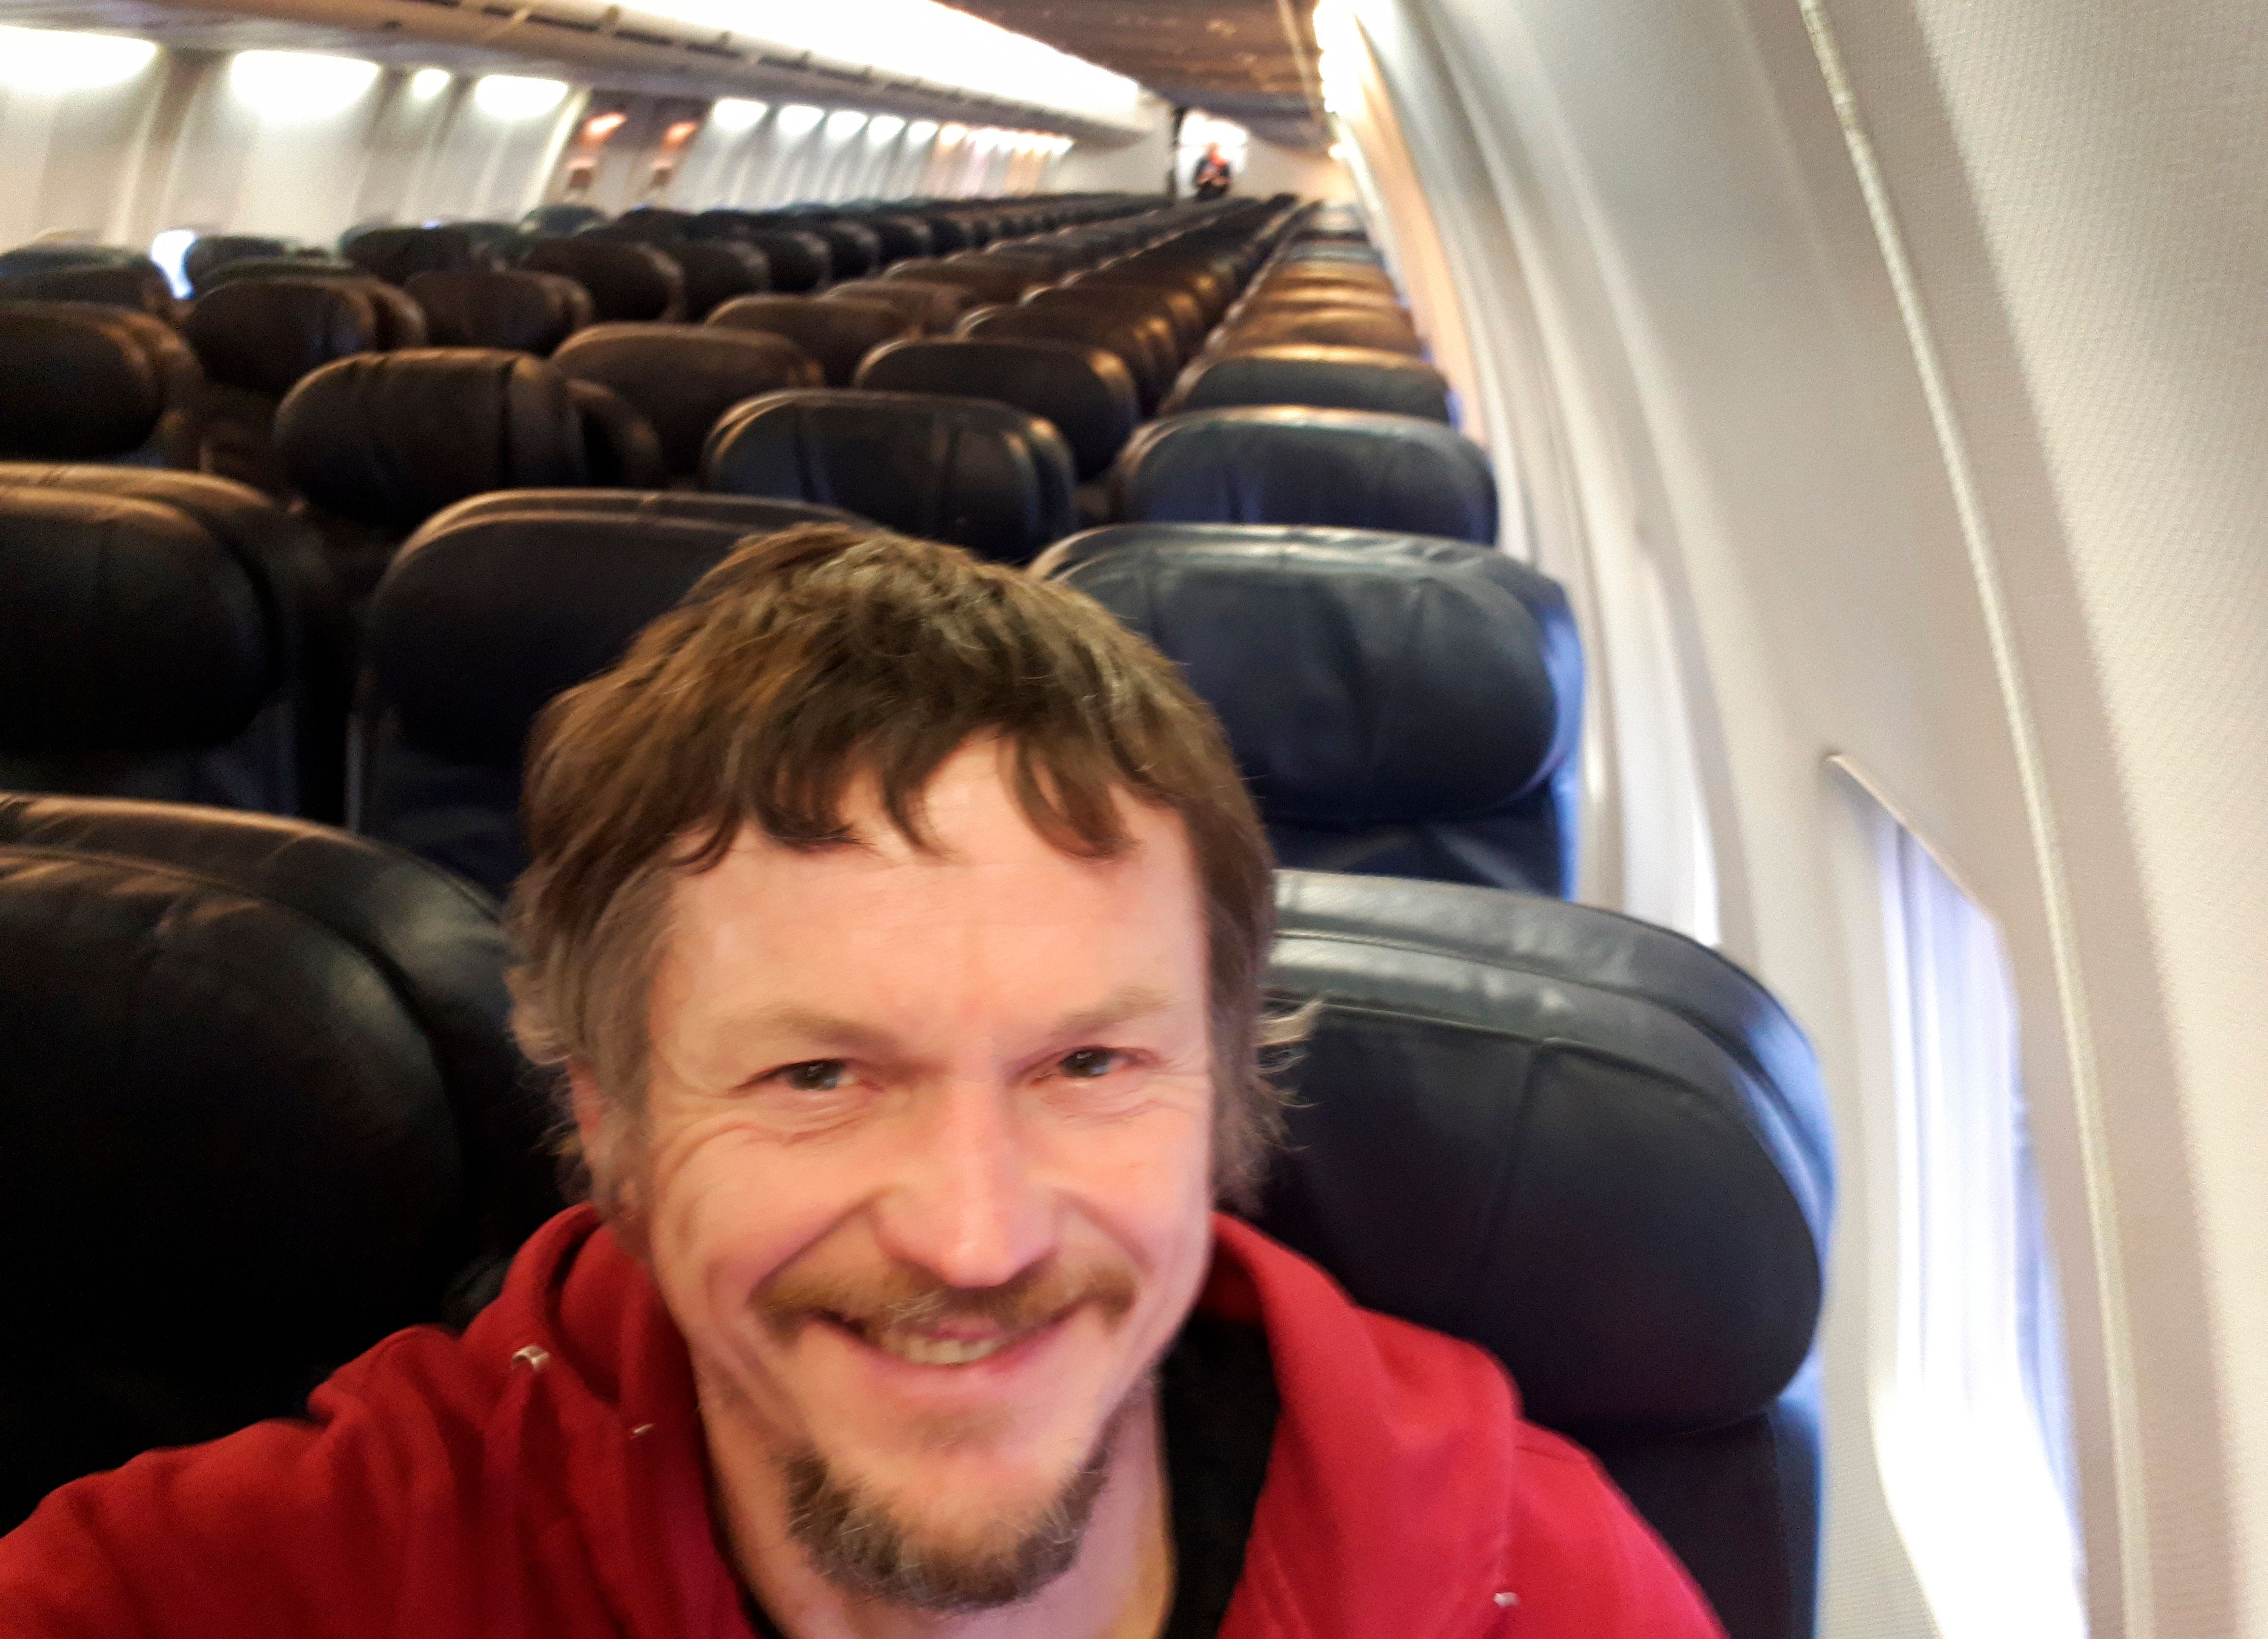 Lithuanian Man Discovers He's Lone Passenger On Huge